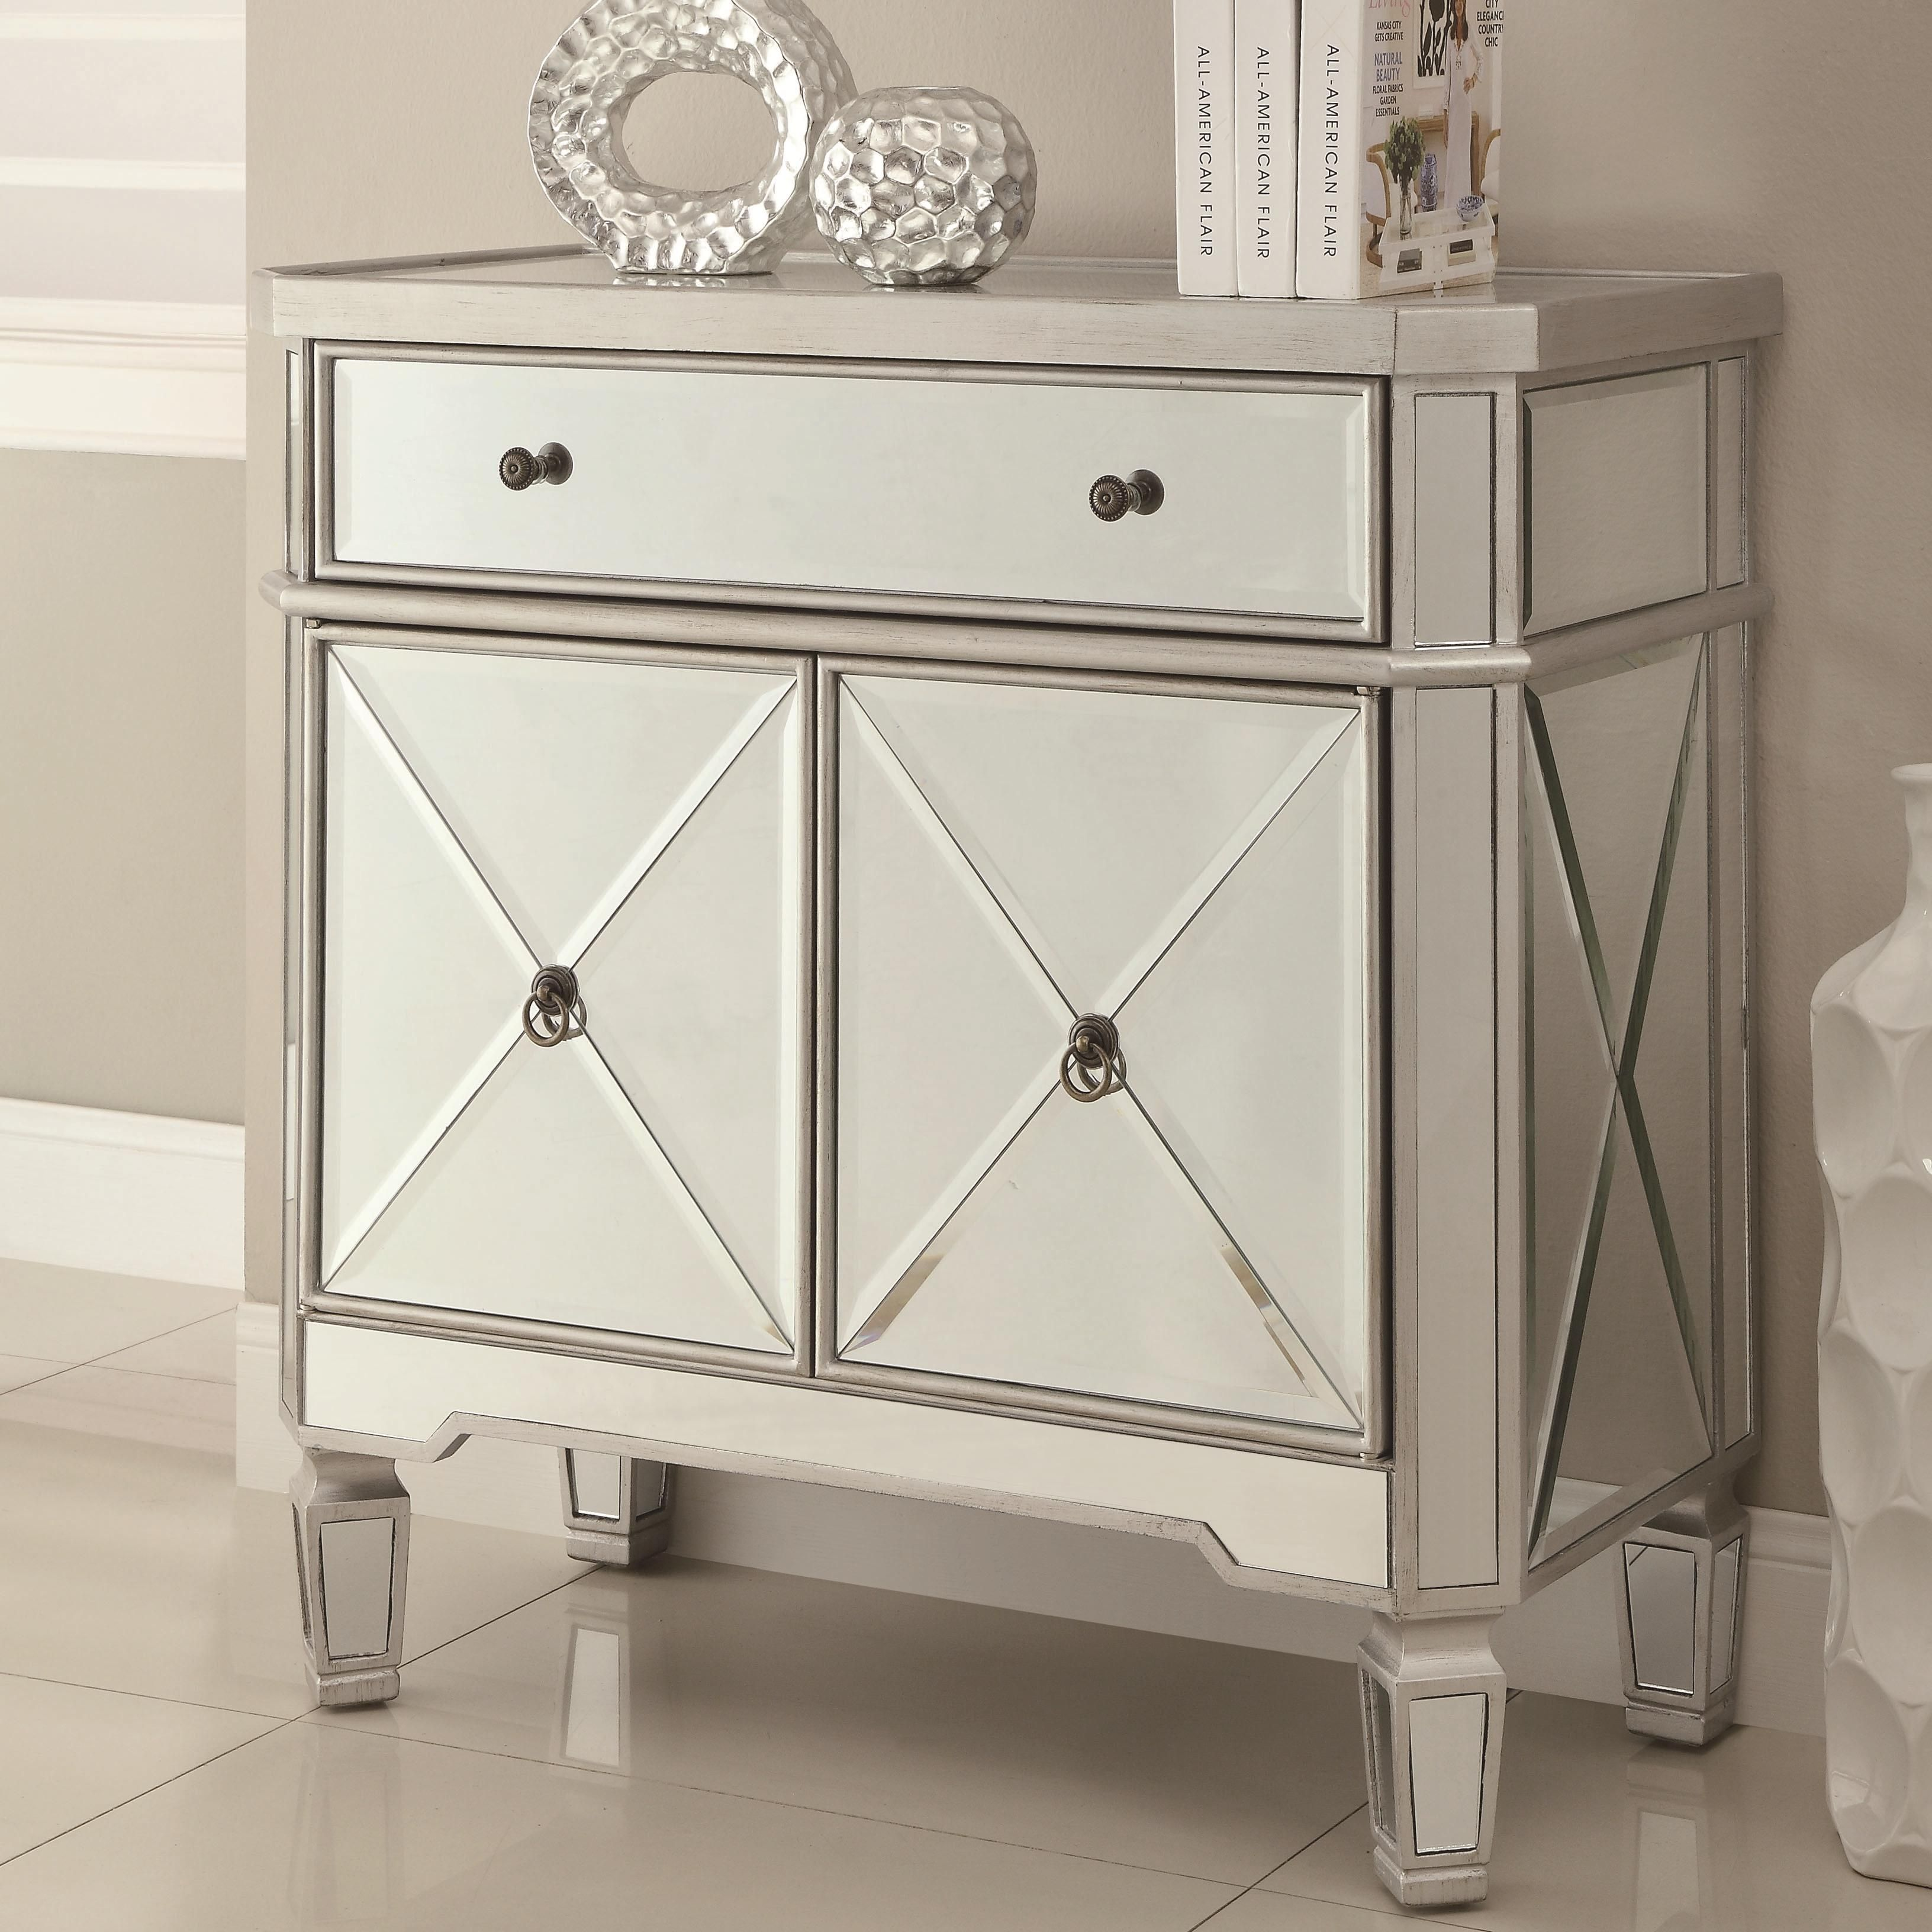 A Great Investment To Add To Your New Home Decor Delsolfurniture